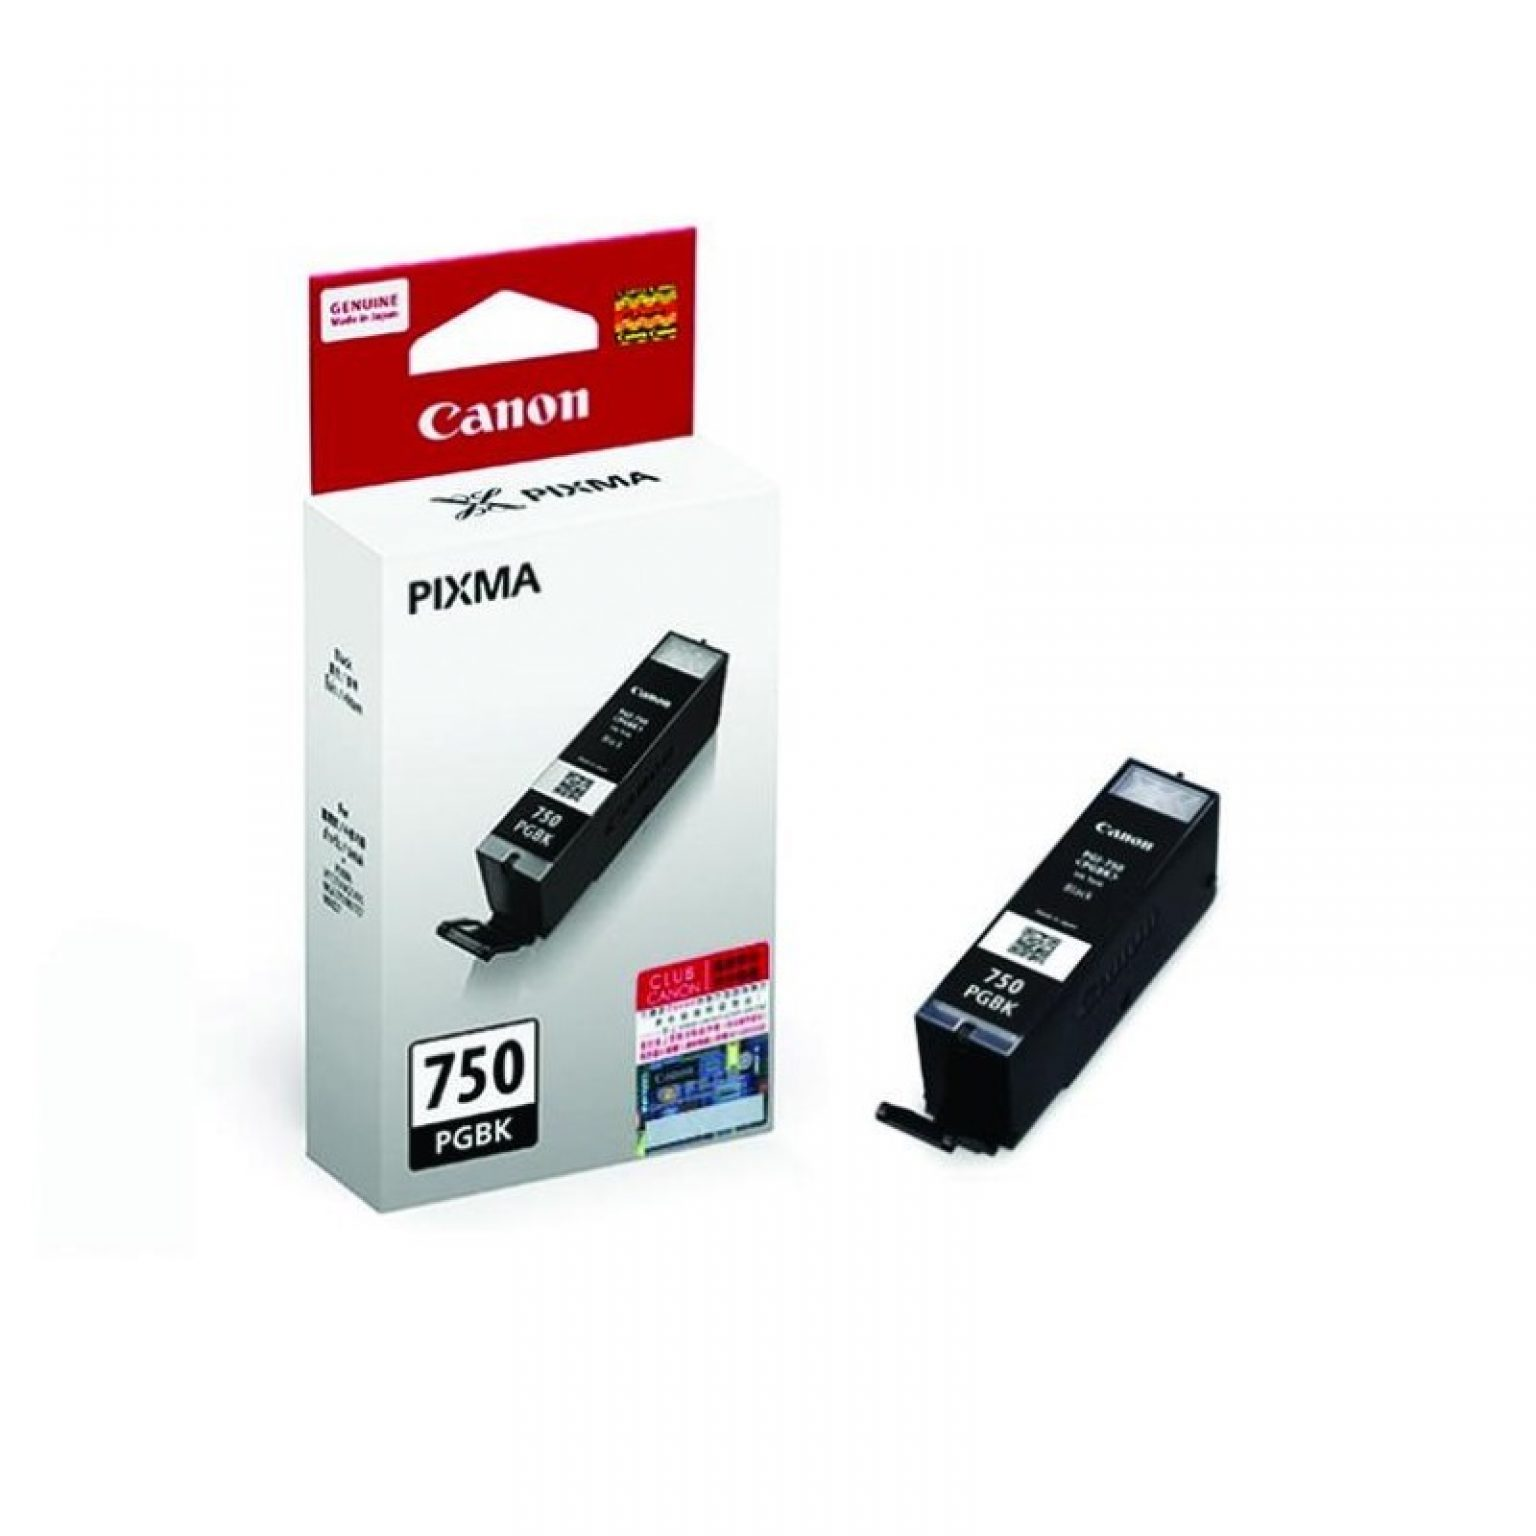 CANON - Ink Cartridge PGI-750 Black [PGI750]